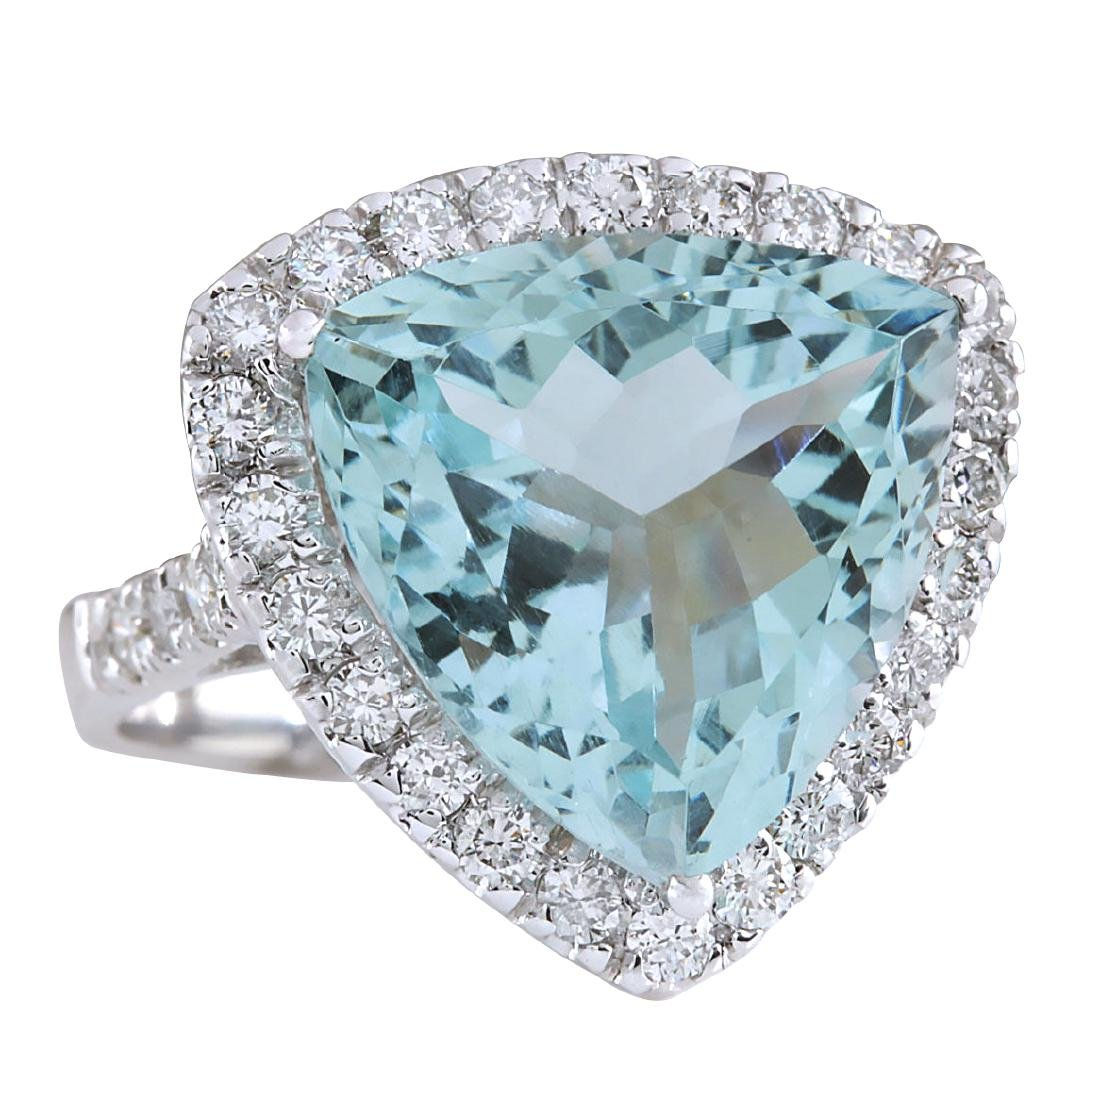 10.26CTW Natural Aquamarine And Diamond Ring In 18K - 2